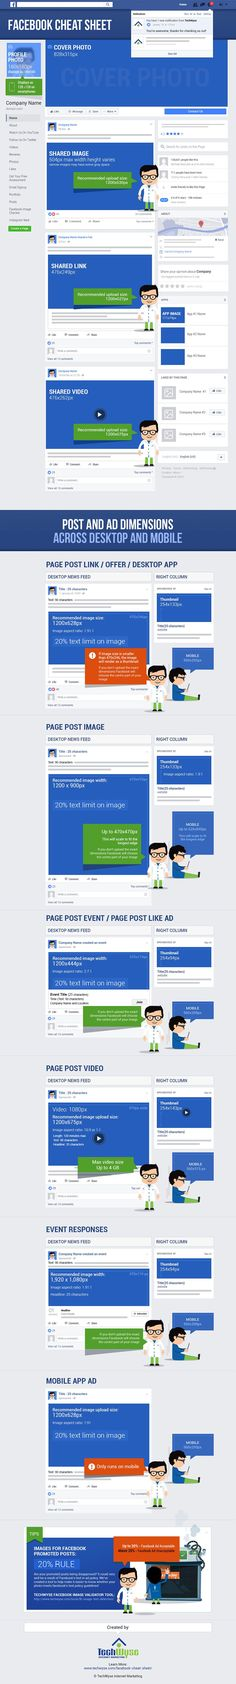 The 2017 Facebook Image Sizes Cheat Sheet